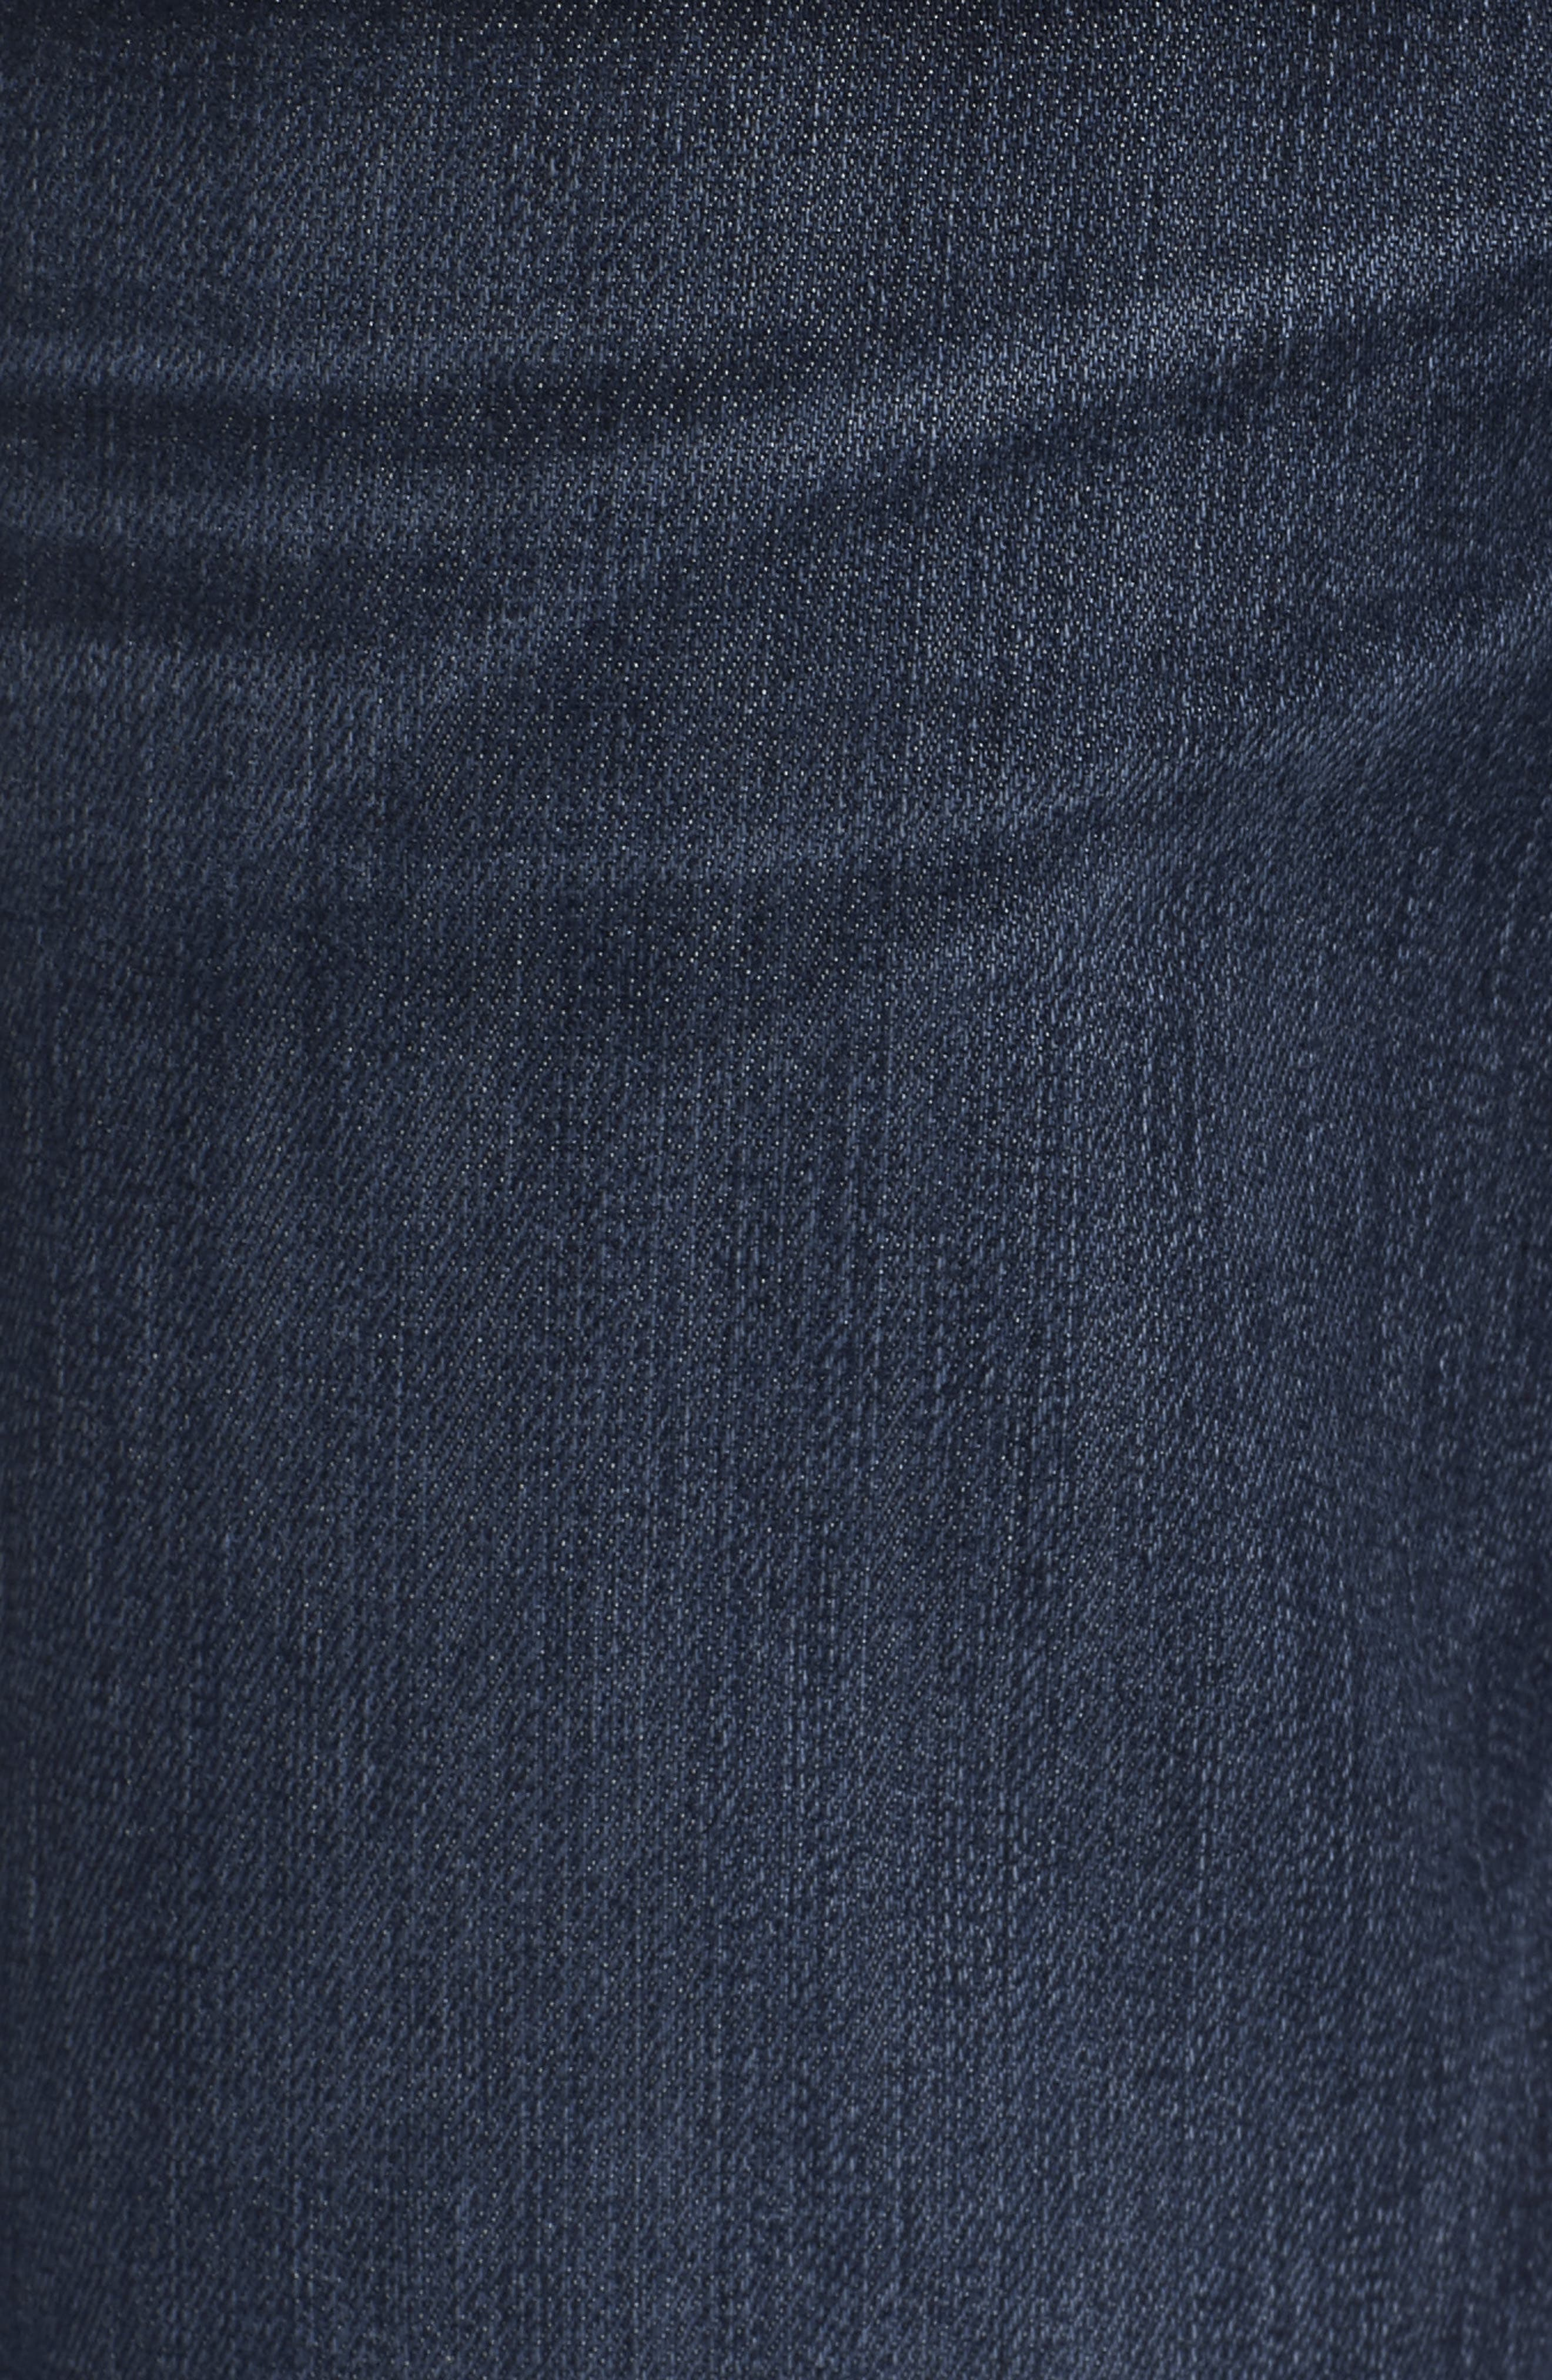 Airweft Austyn Relaxed Straight Leg Jeans,                             Alternate thumbnail 5, color,                             400